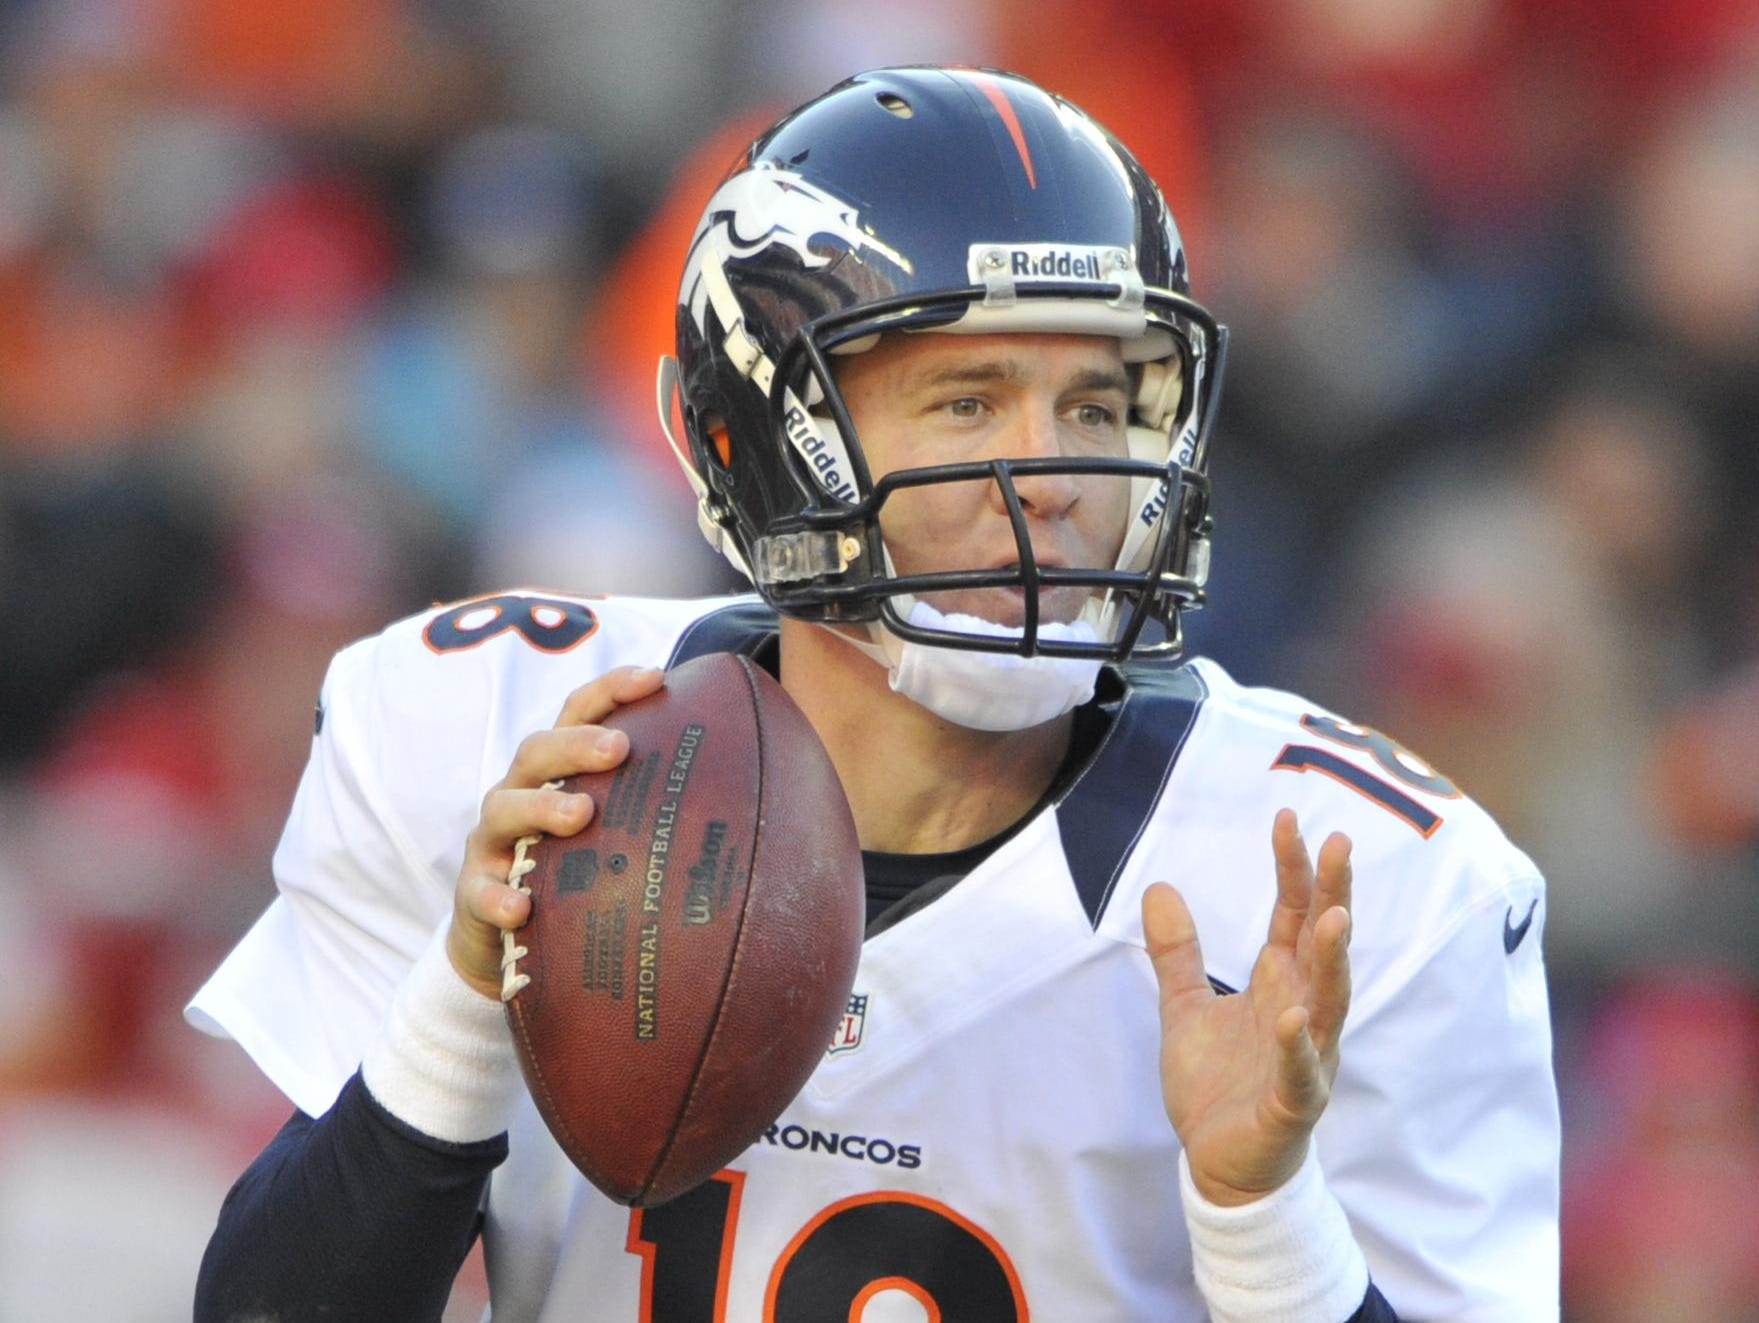 Denver Broncos quarterback Peyton Manning will be part of a high school sports banquet in Northern Colorado in May.